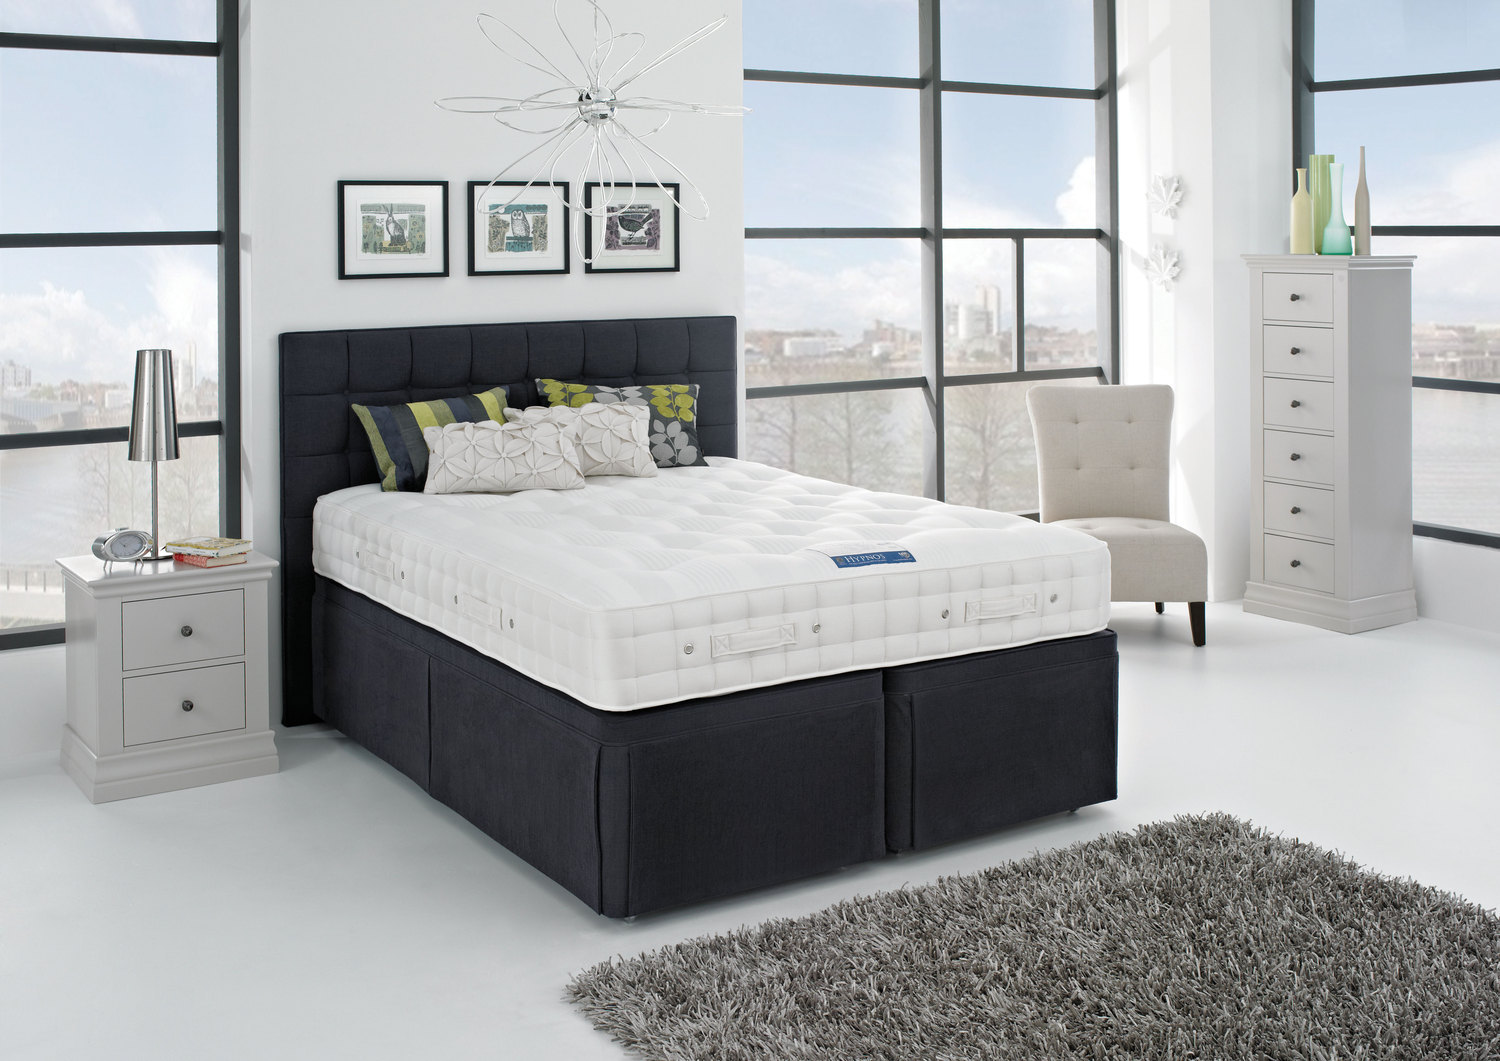 hypnos orthocare 10 divan bed firm from